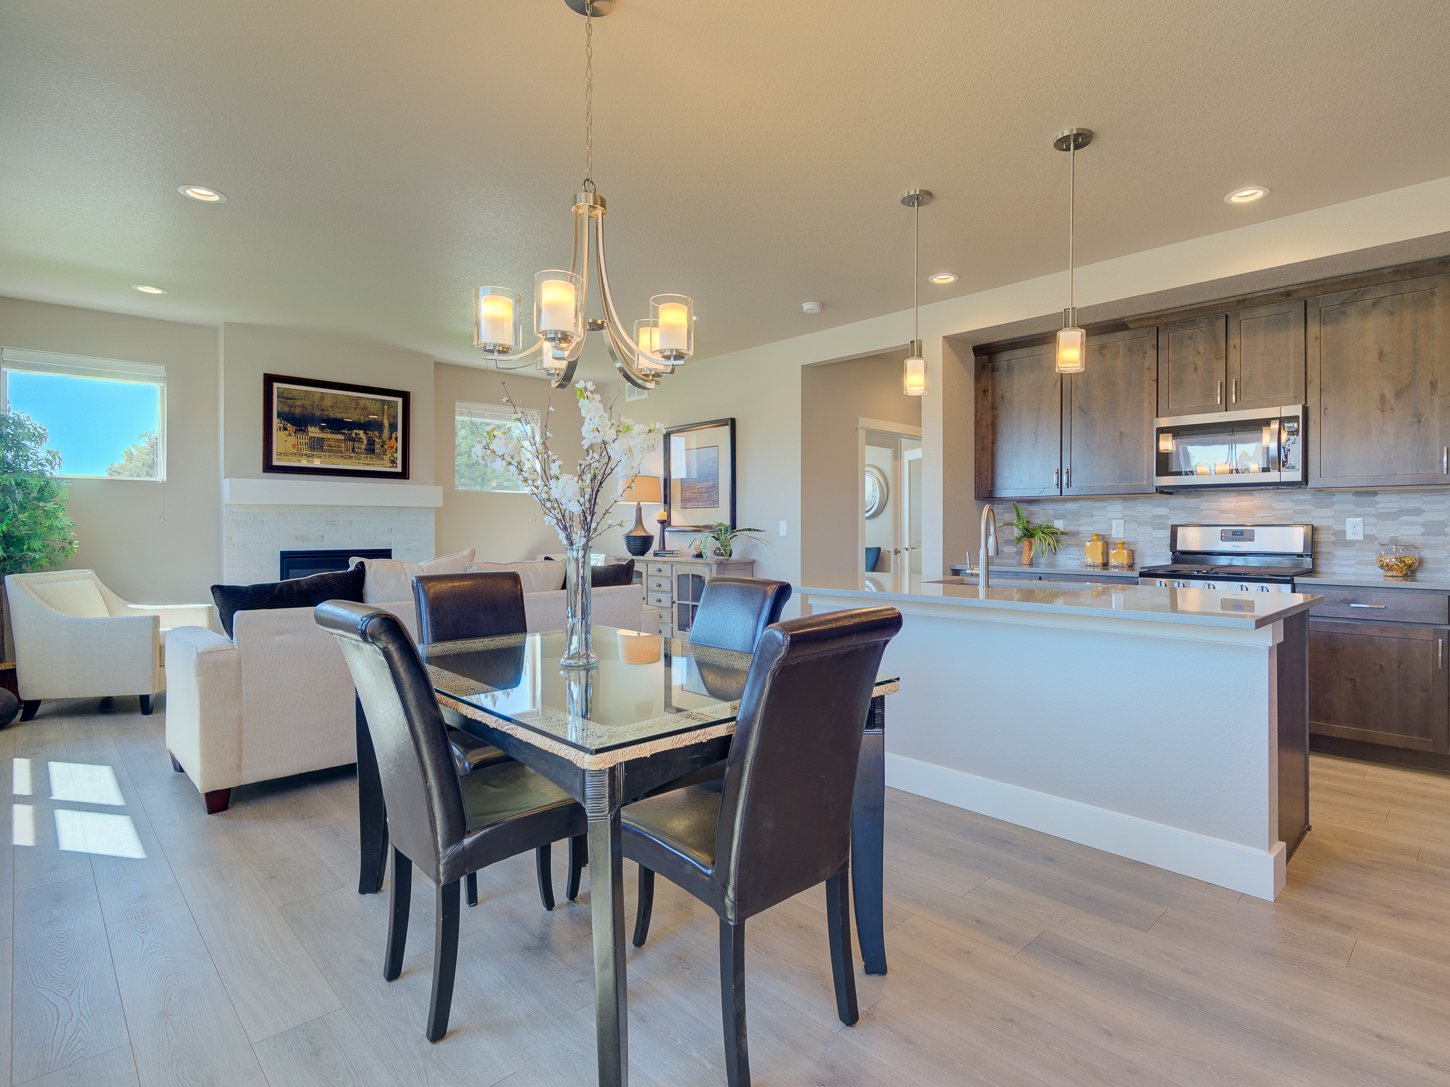 11_vail_loveland_dining_20area_20and_20kitchen_new_20houses_20for_20sale